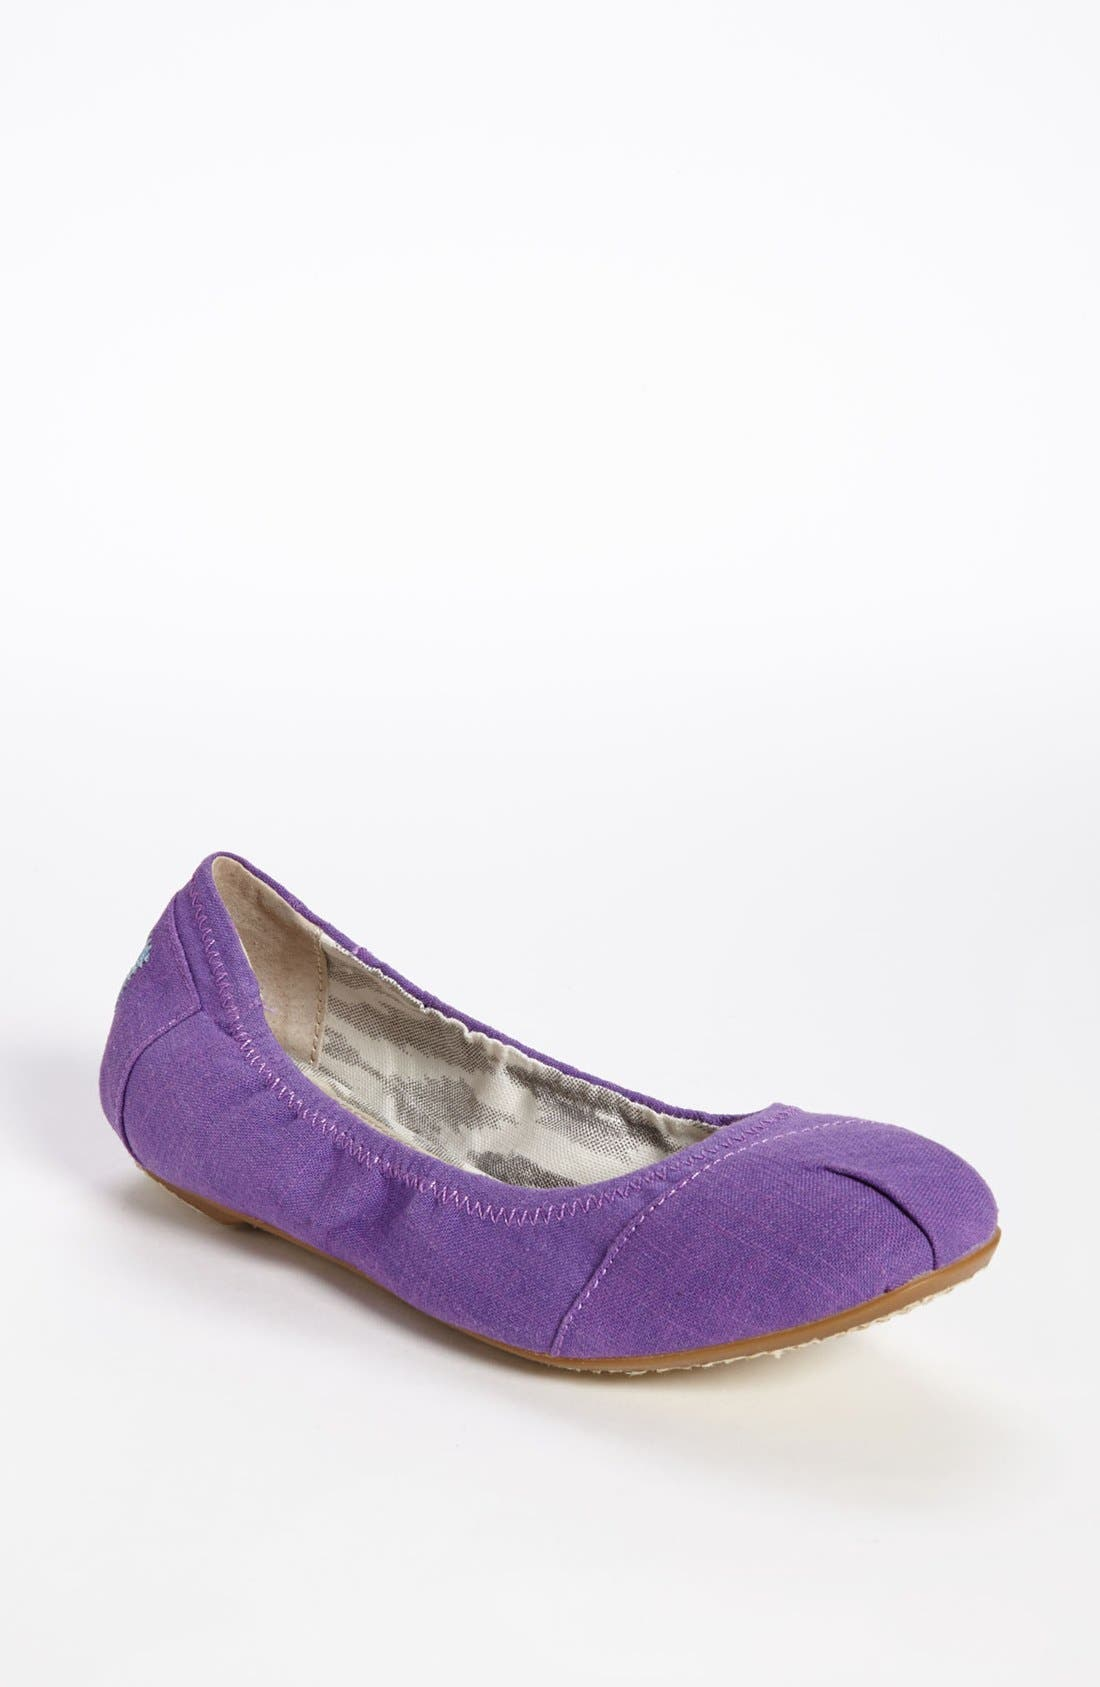 Alternate Image 1 Selected - TOMS Ballet Flat (Women)